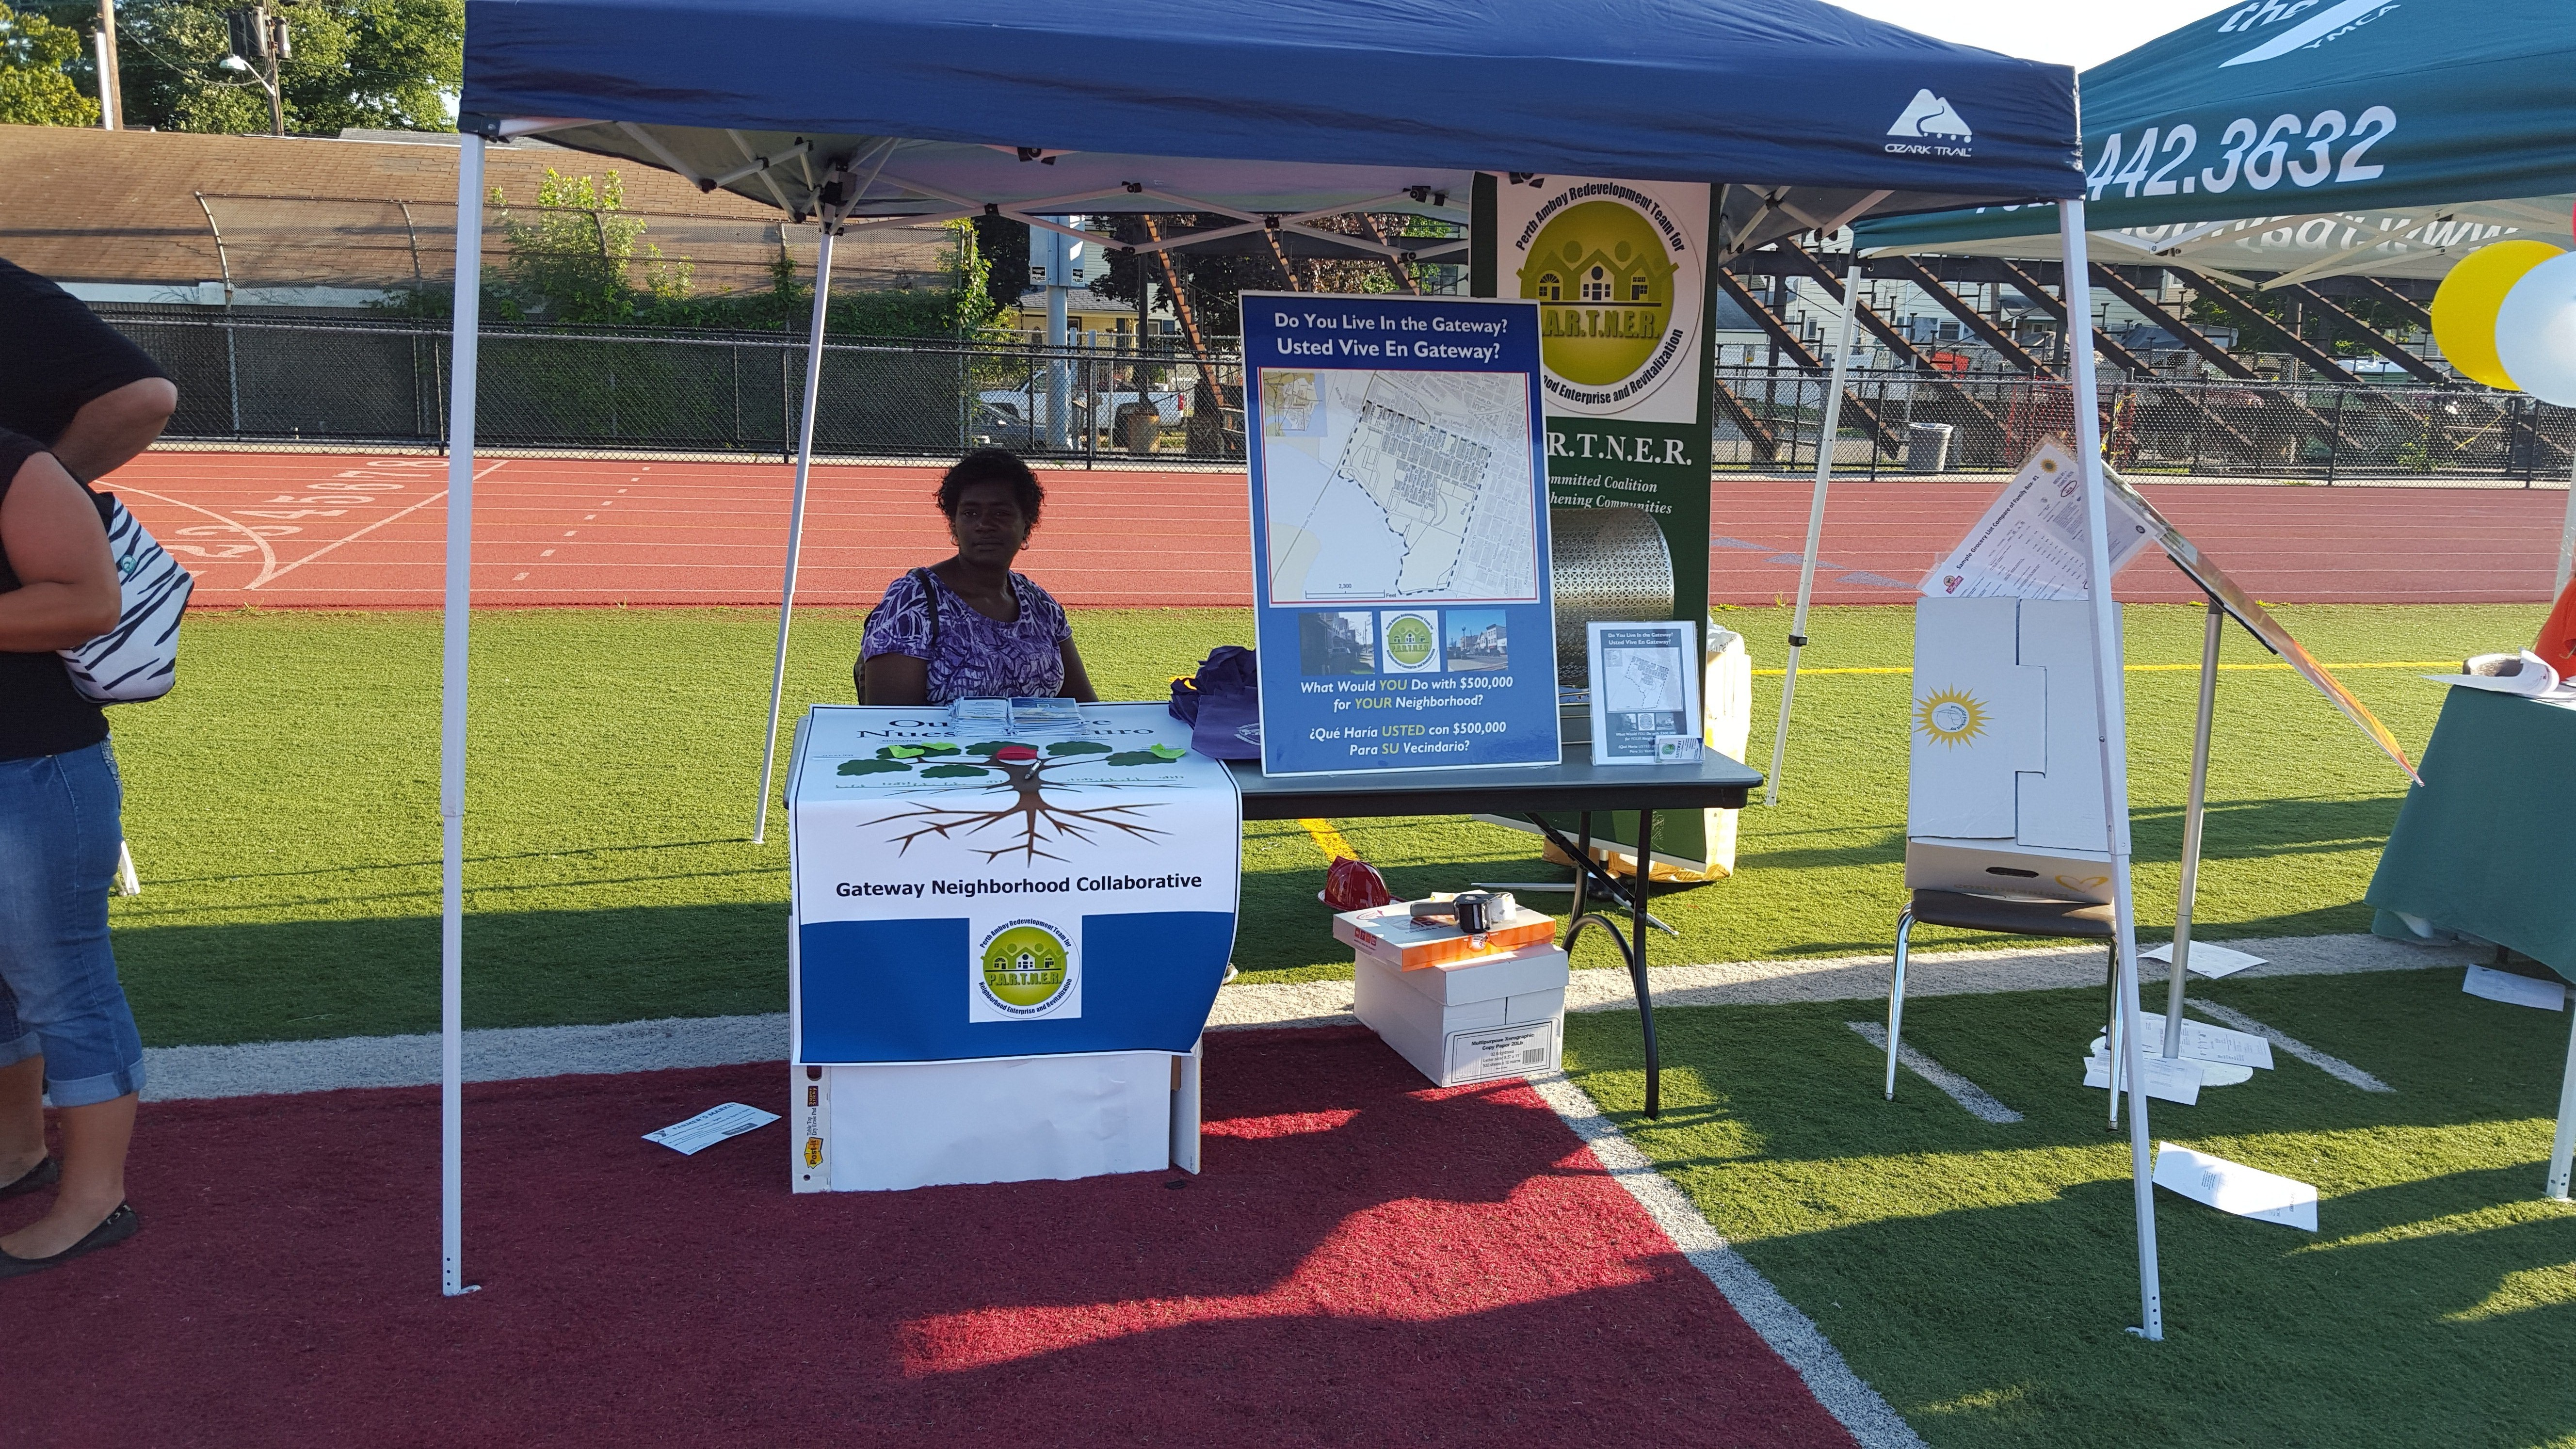 Perth Amboy Police Dept's National Night Out 2015